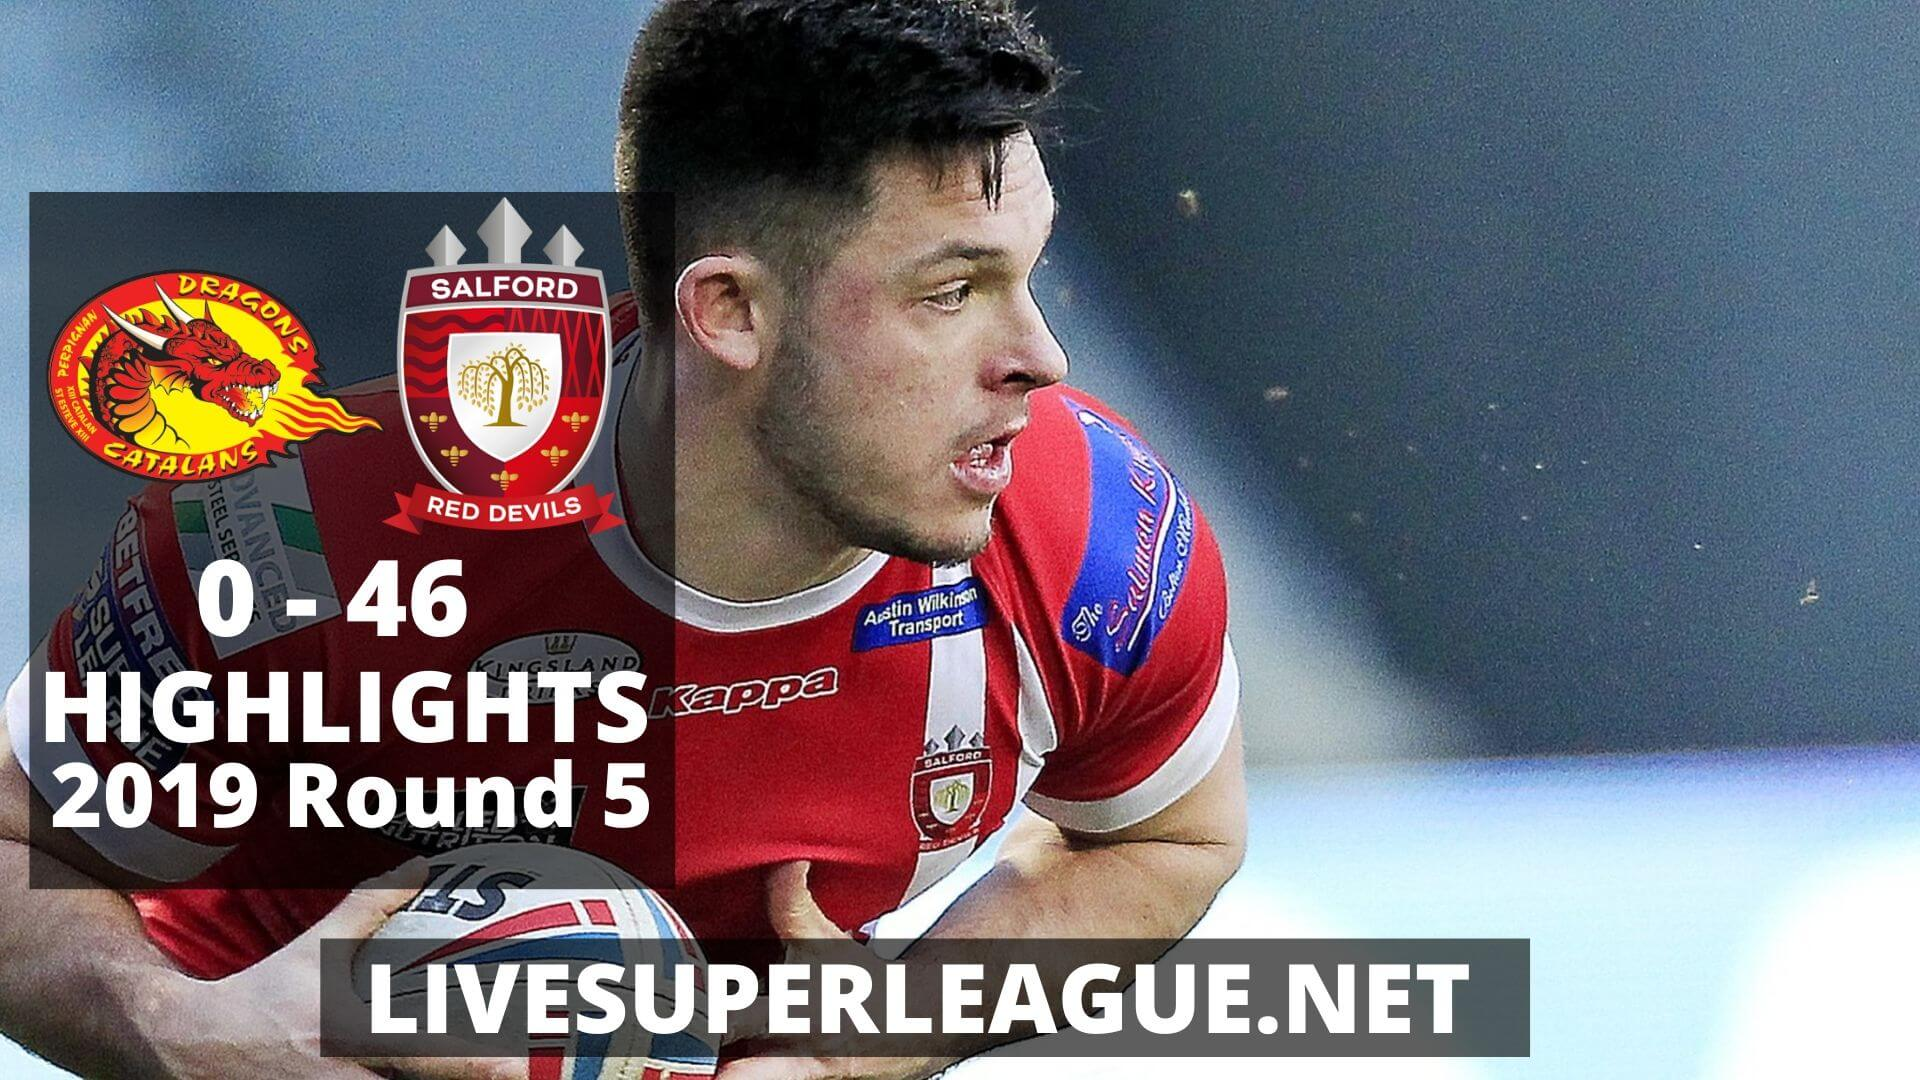 Catalans Dragons Vs Salford Red Devils Highlights 2019 Round 5